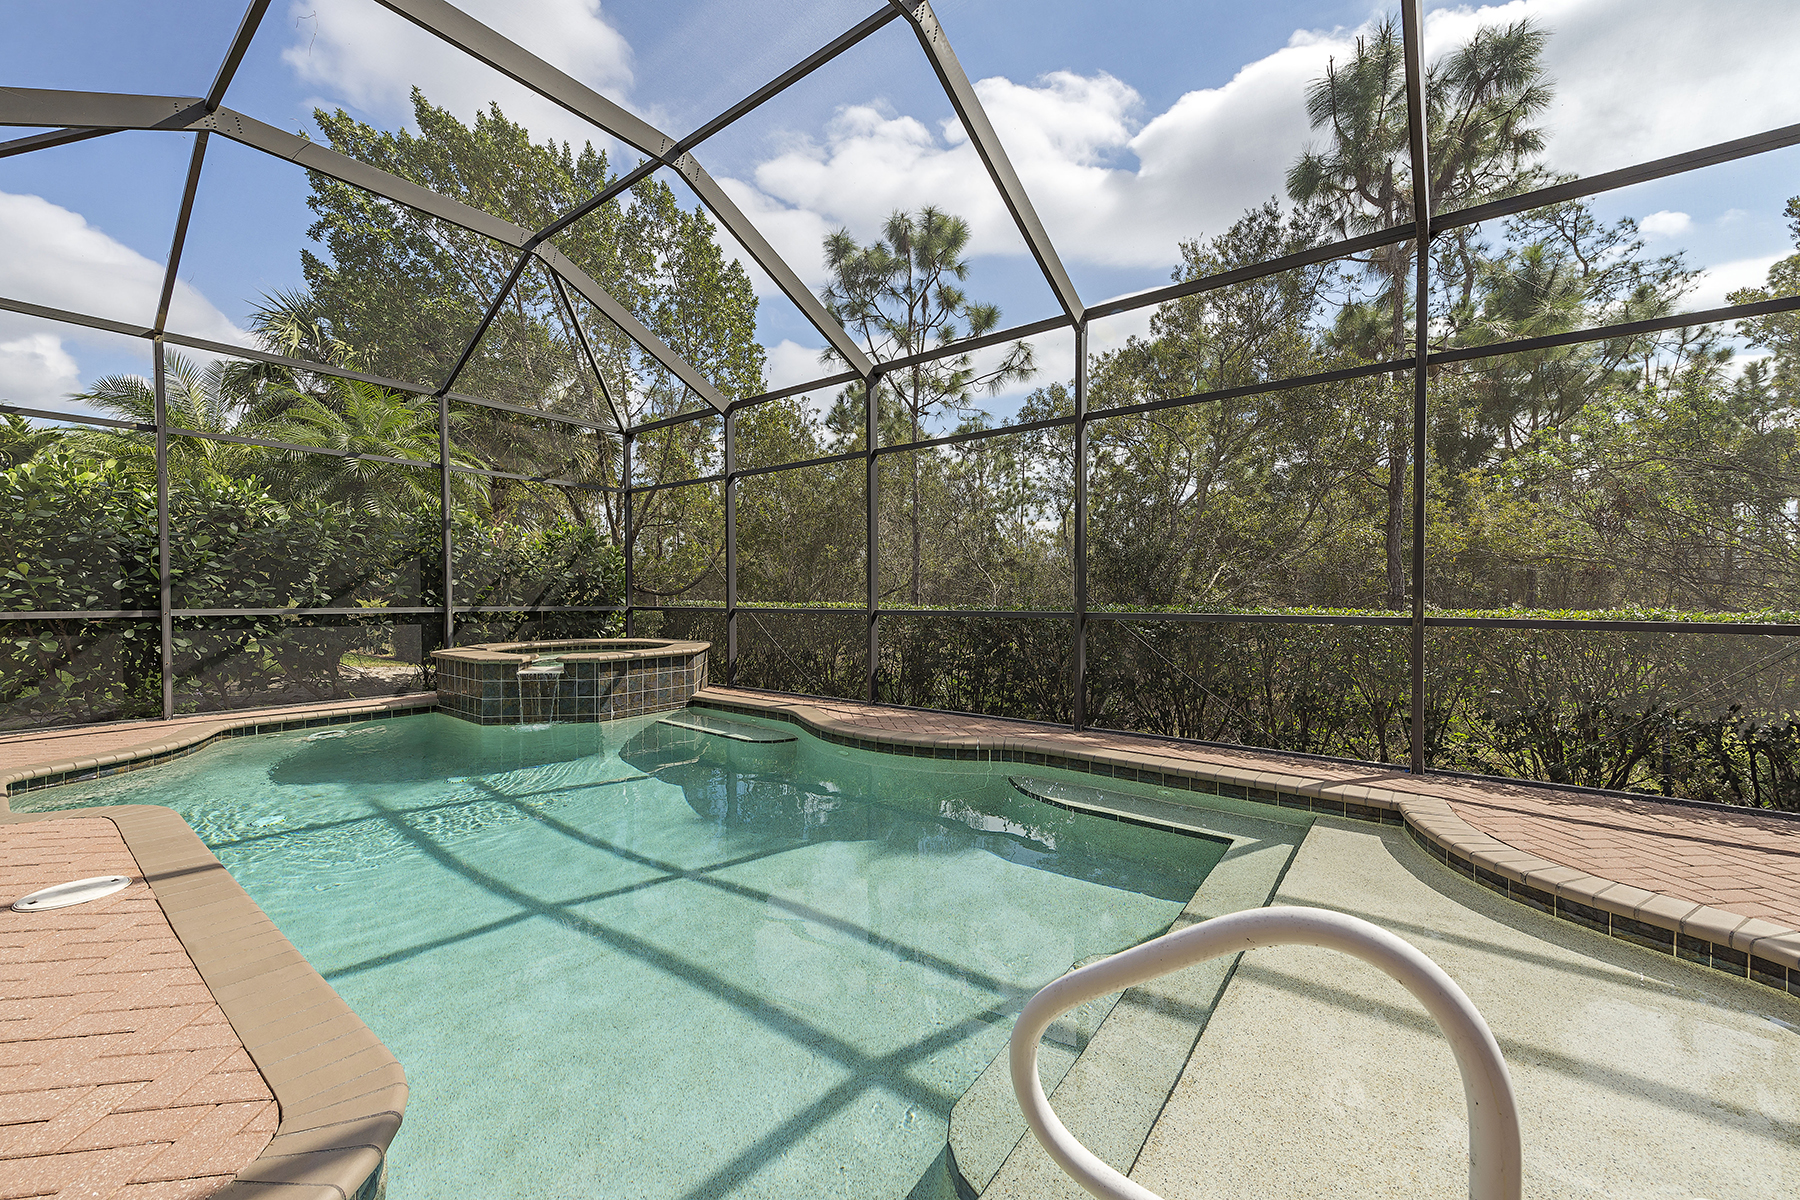 Single Family Home for Sale at Naples 14660 Beaufort Cir Naples, Florida, 34119 United States